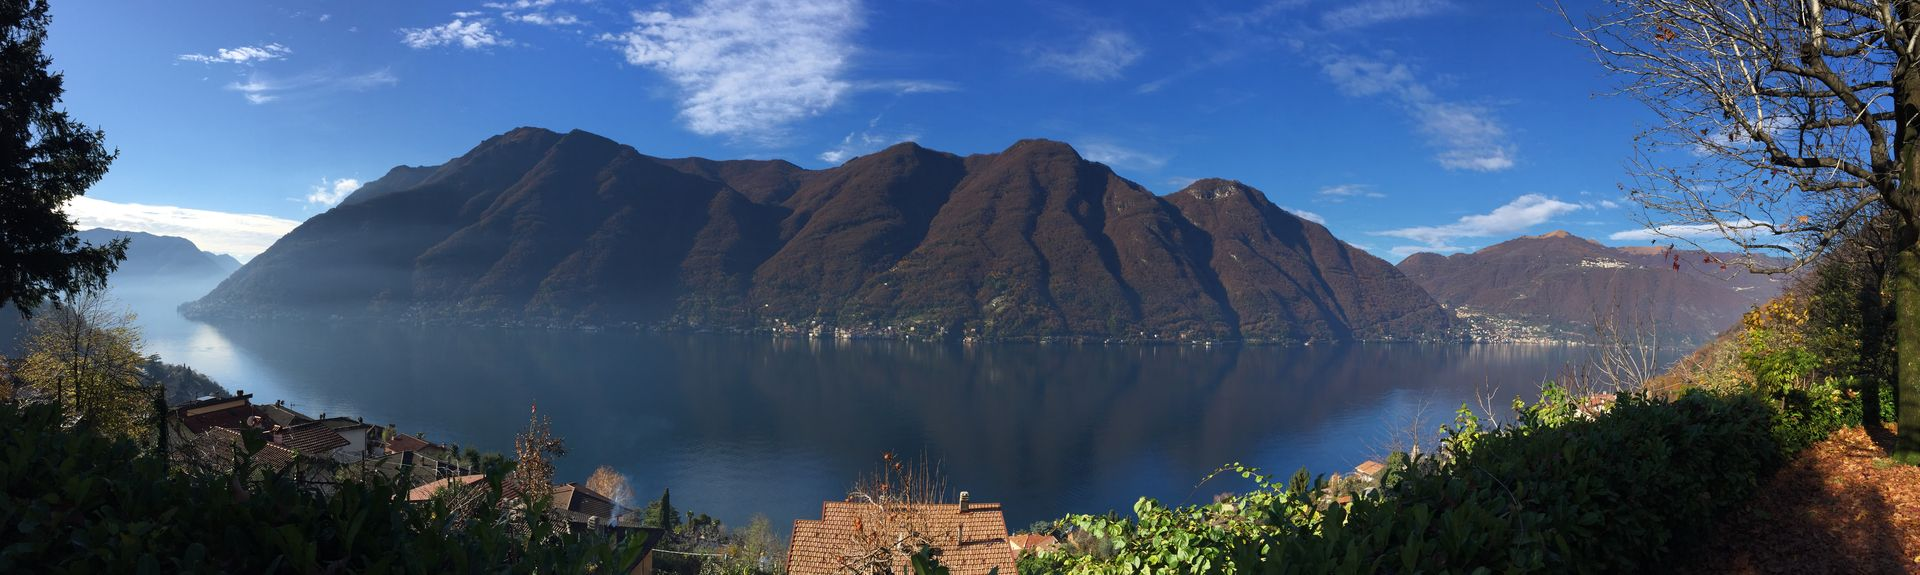 Canzo, Como, Lombardy, Italy